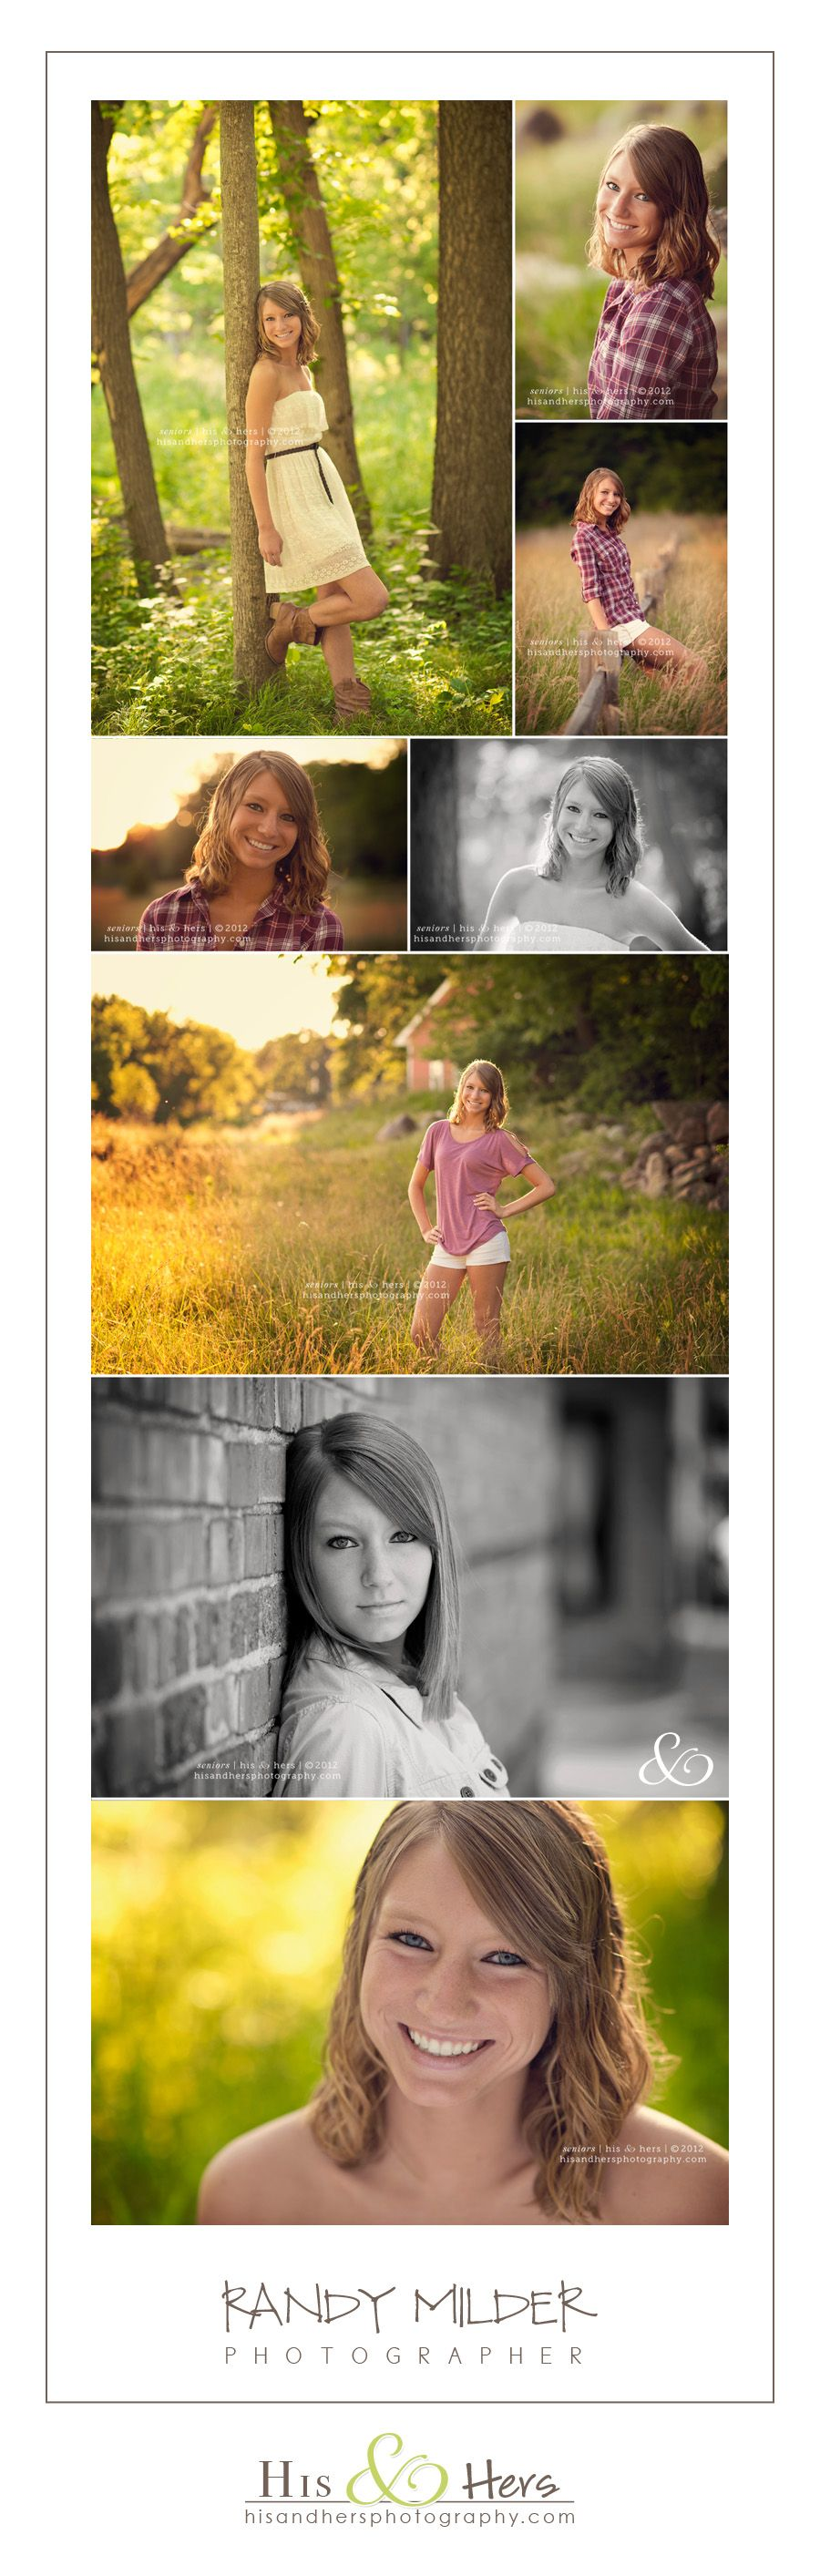 des moines iowa high school senior portraits | class of 2012 | photographer, randy milder | his & hers